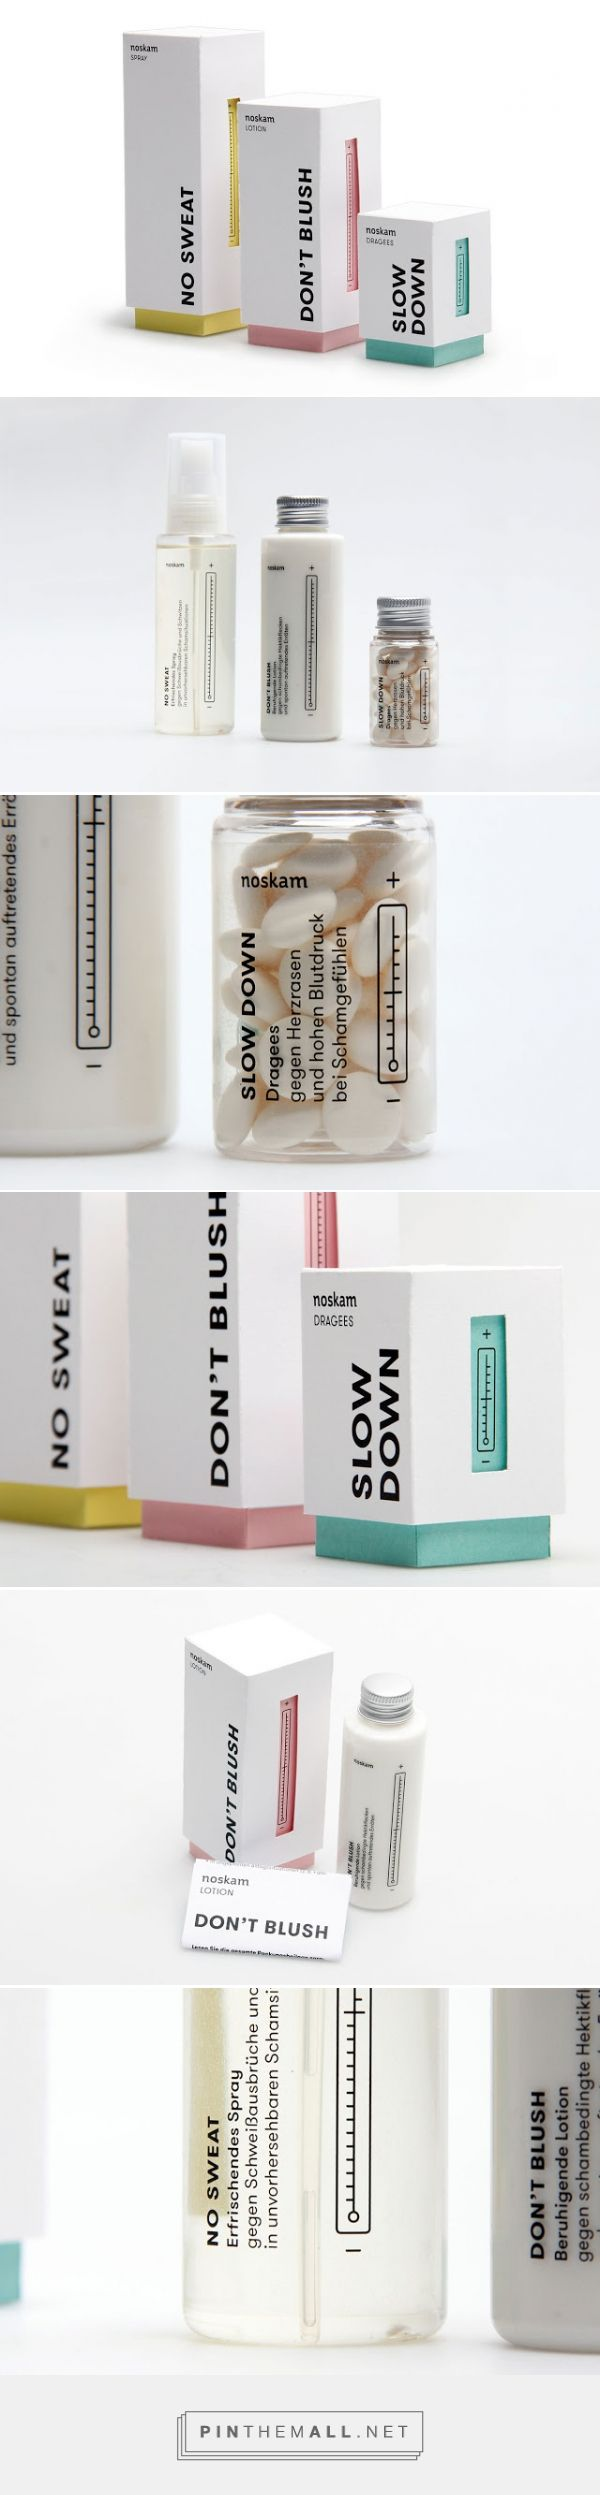 Noskam Student packaging concept designed by muskat (Germany) - http://www.packagingoftheworld.com/2016/01/noskam-student-project.html